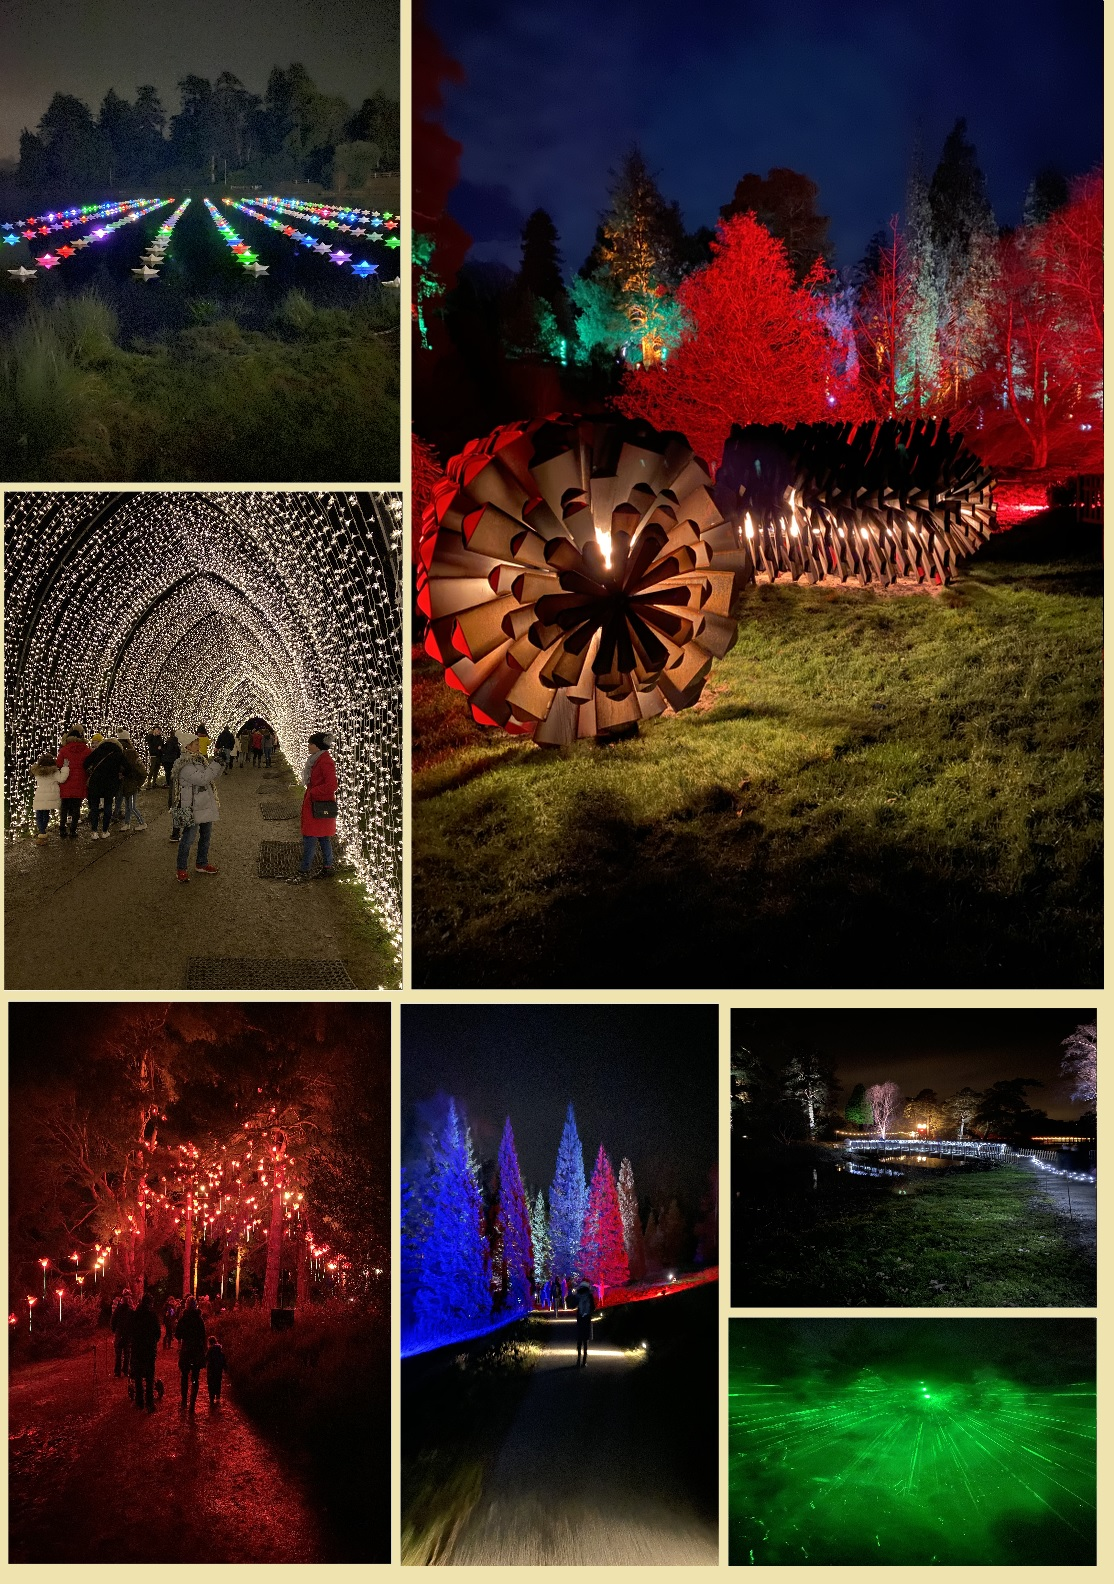 BEDGEBURY PINETUM & FOREST... A VERY MAGICAL TIME OF THE YEAR